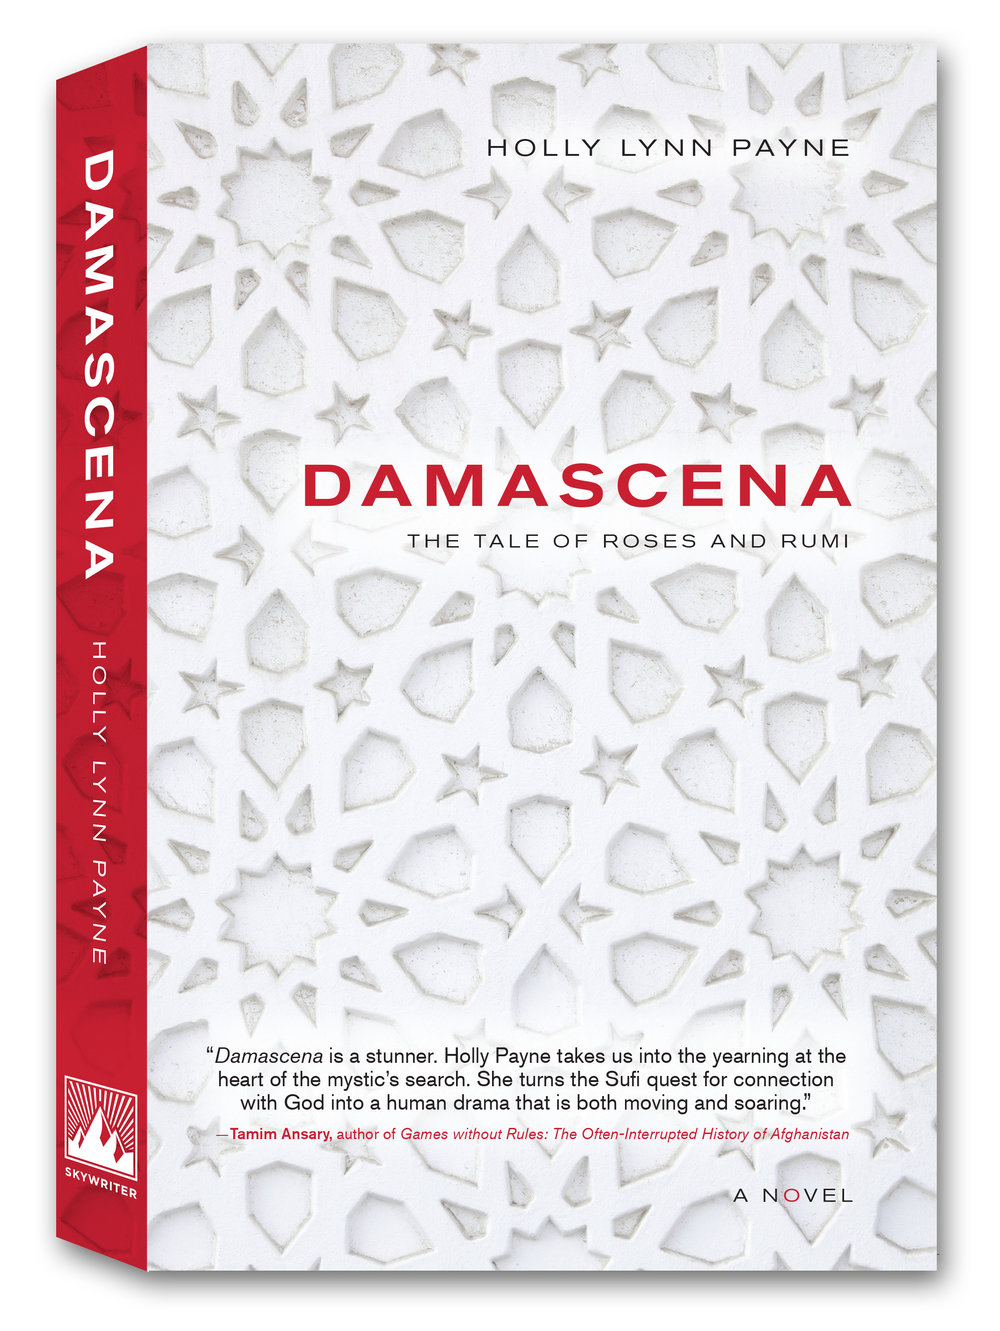 Damascena: The Tale of Roses and Rumi